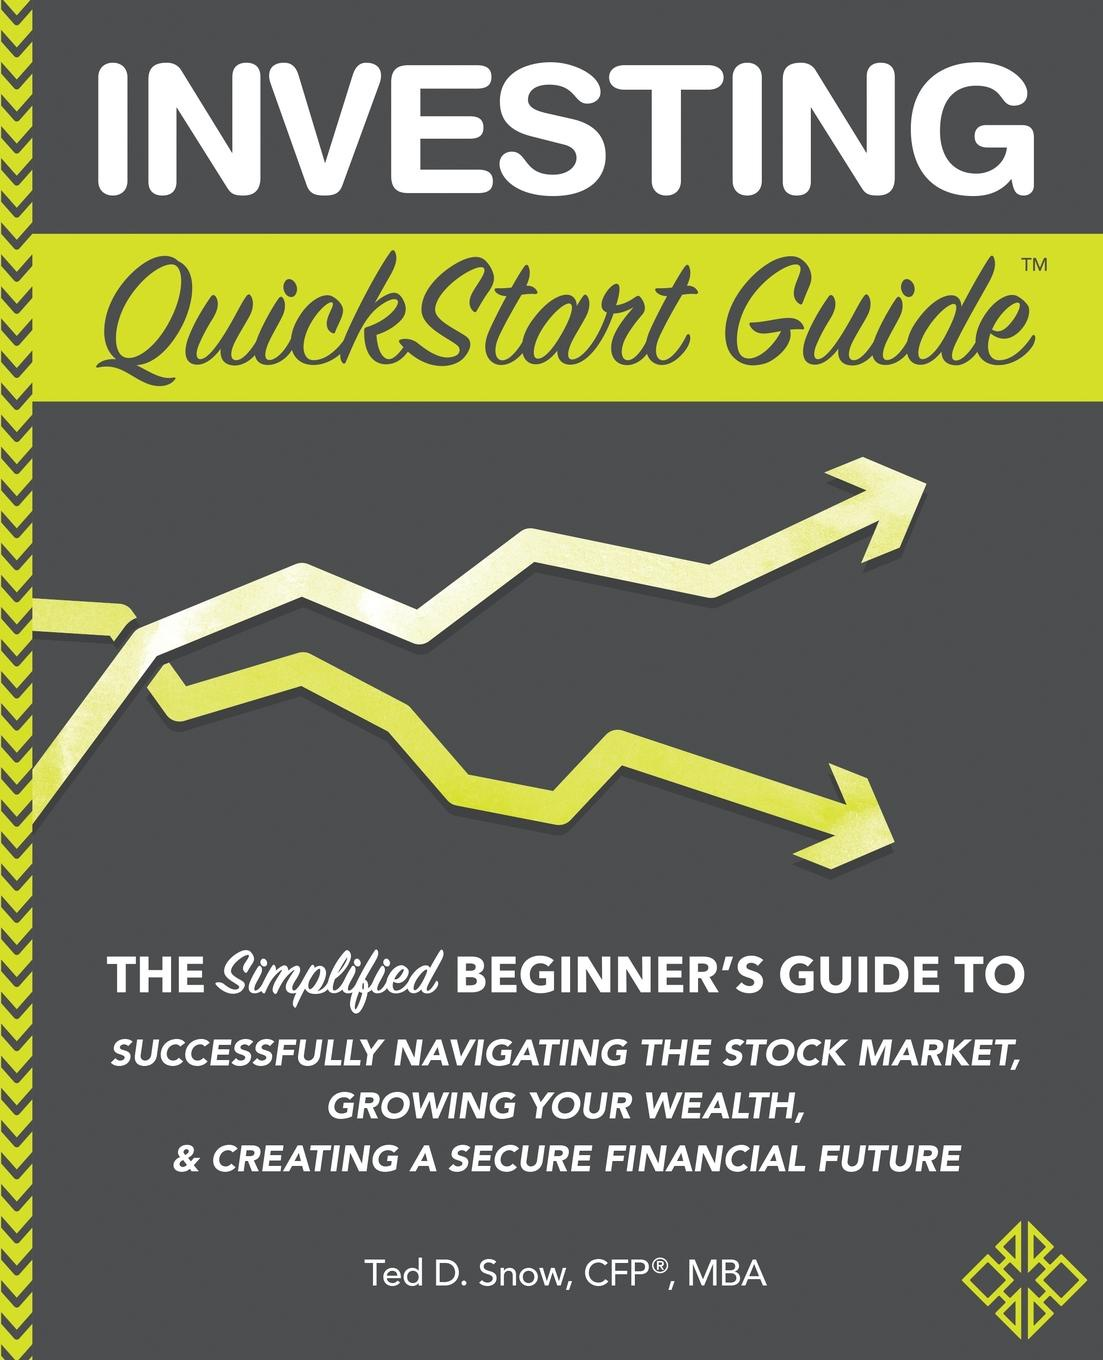 Ted D. Snow CFP® MBA Investing QuickStart Guide. The Simplified Beginner.s Guide to Successfully Navigating the Stock Market, Growing Your Wealth . Creating a Secure Financial Future